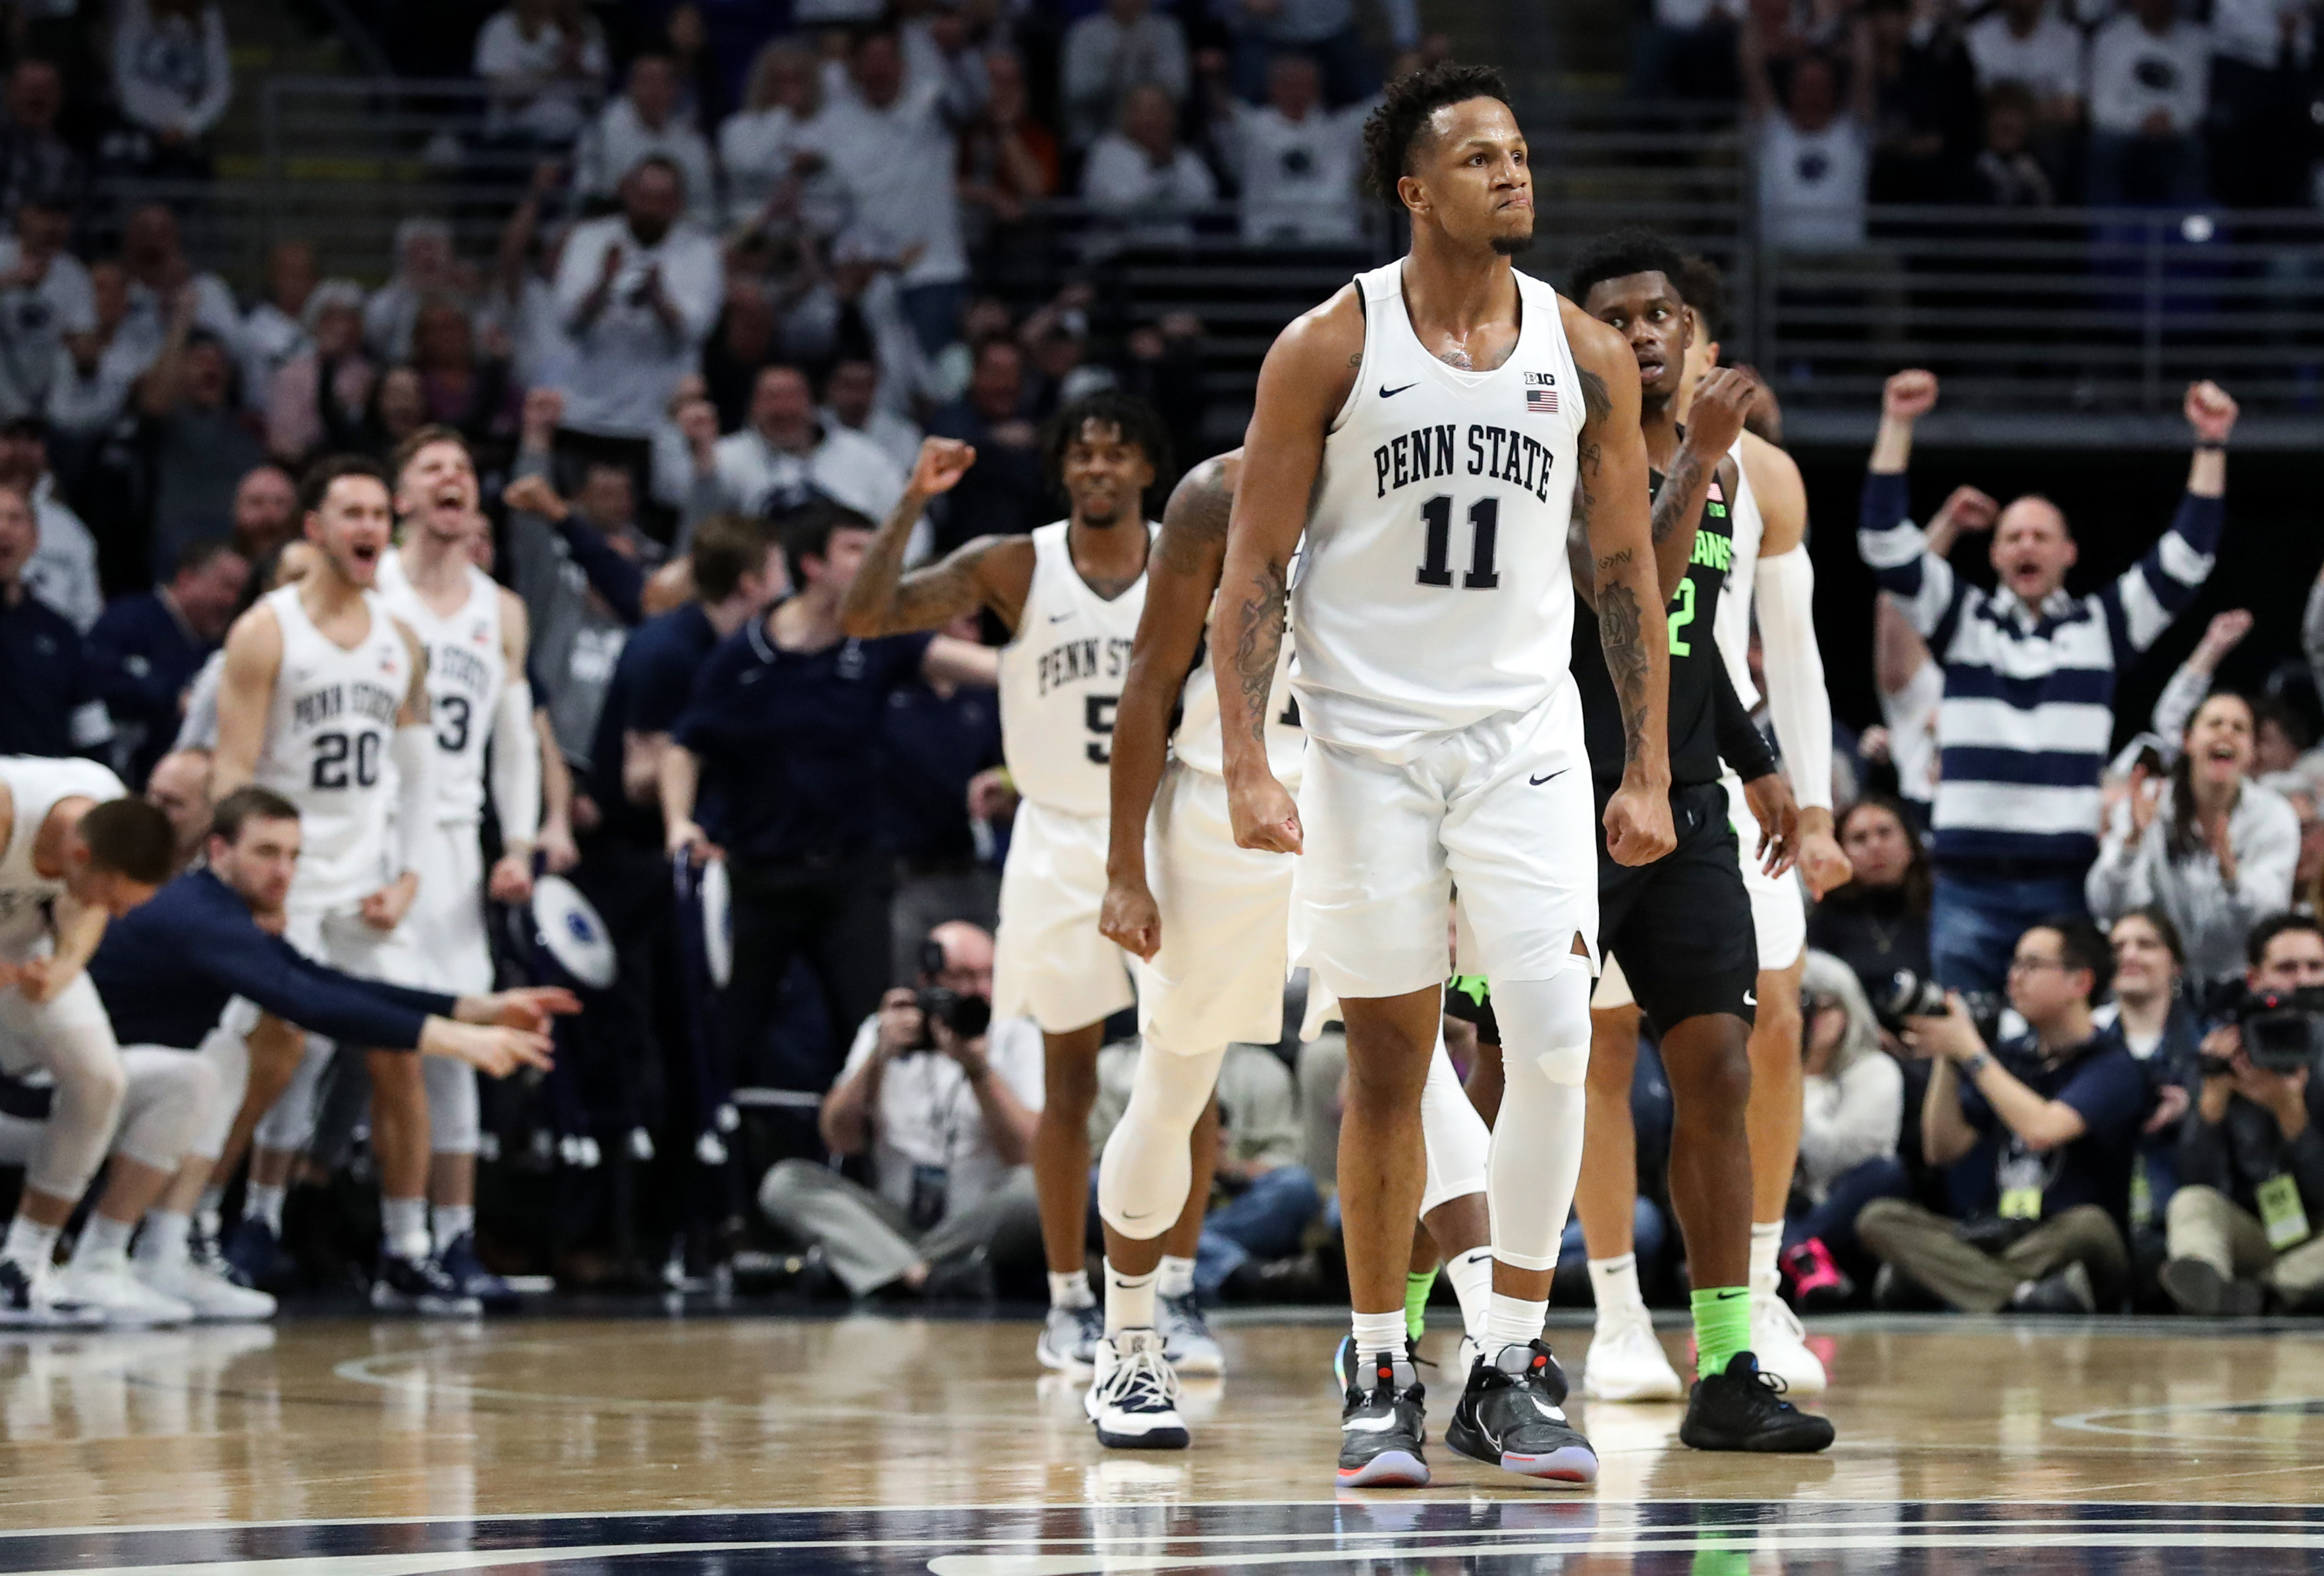 NCAA Basketball: Michigan State at Penn State